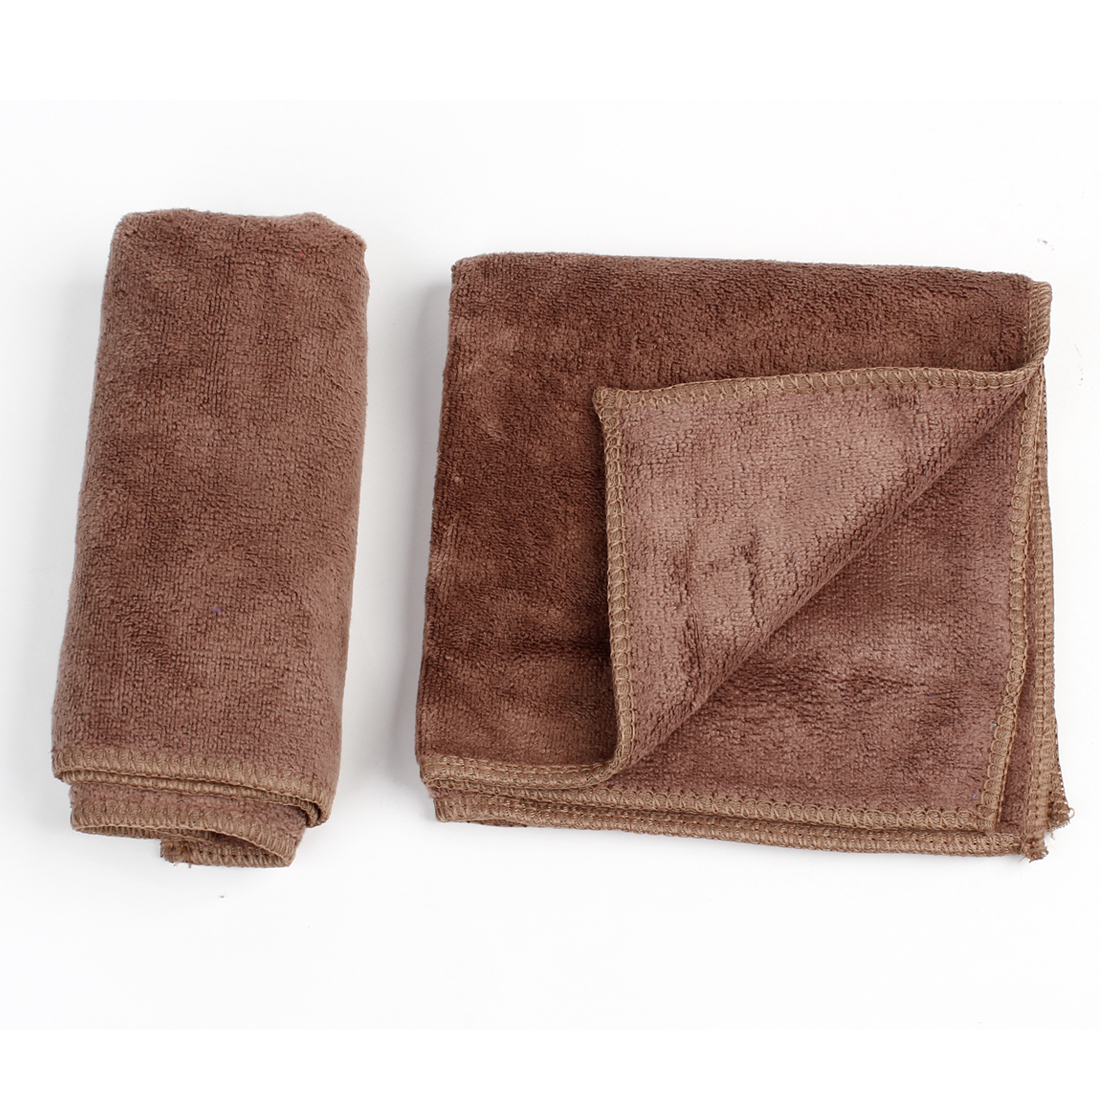 2pcs 32cmx32cm Coffee Color Microfiber Car Interior Faux Leather Cleaning Towel